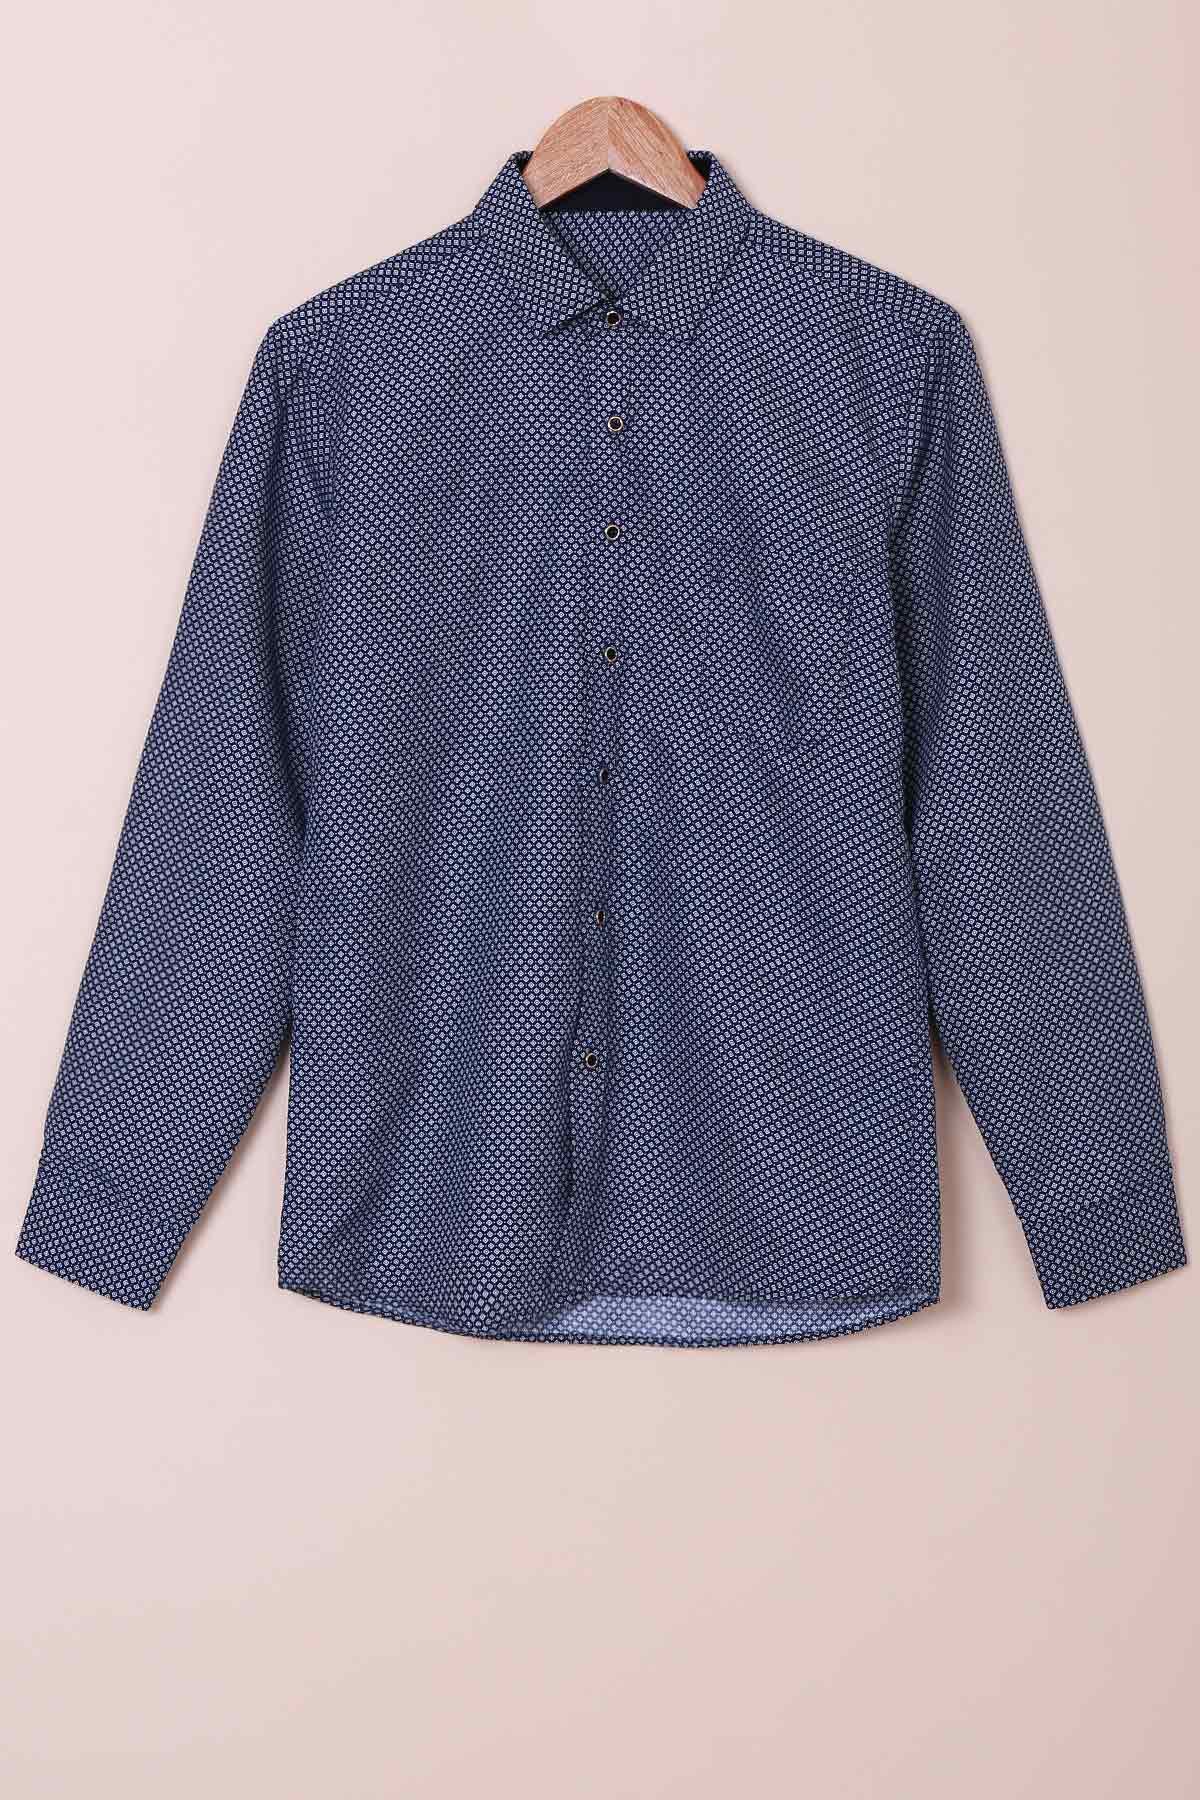 Long Sleeves Single Breasted Checked Shirt For Men - DEEP BLUE XS